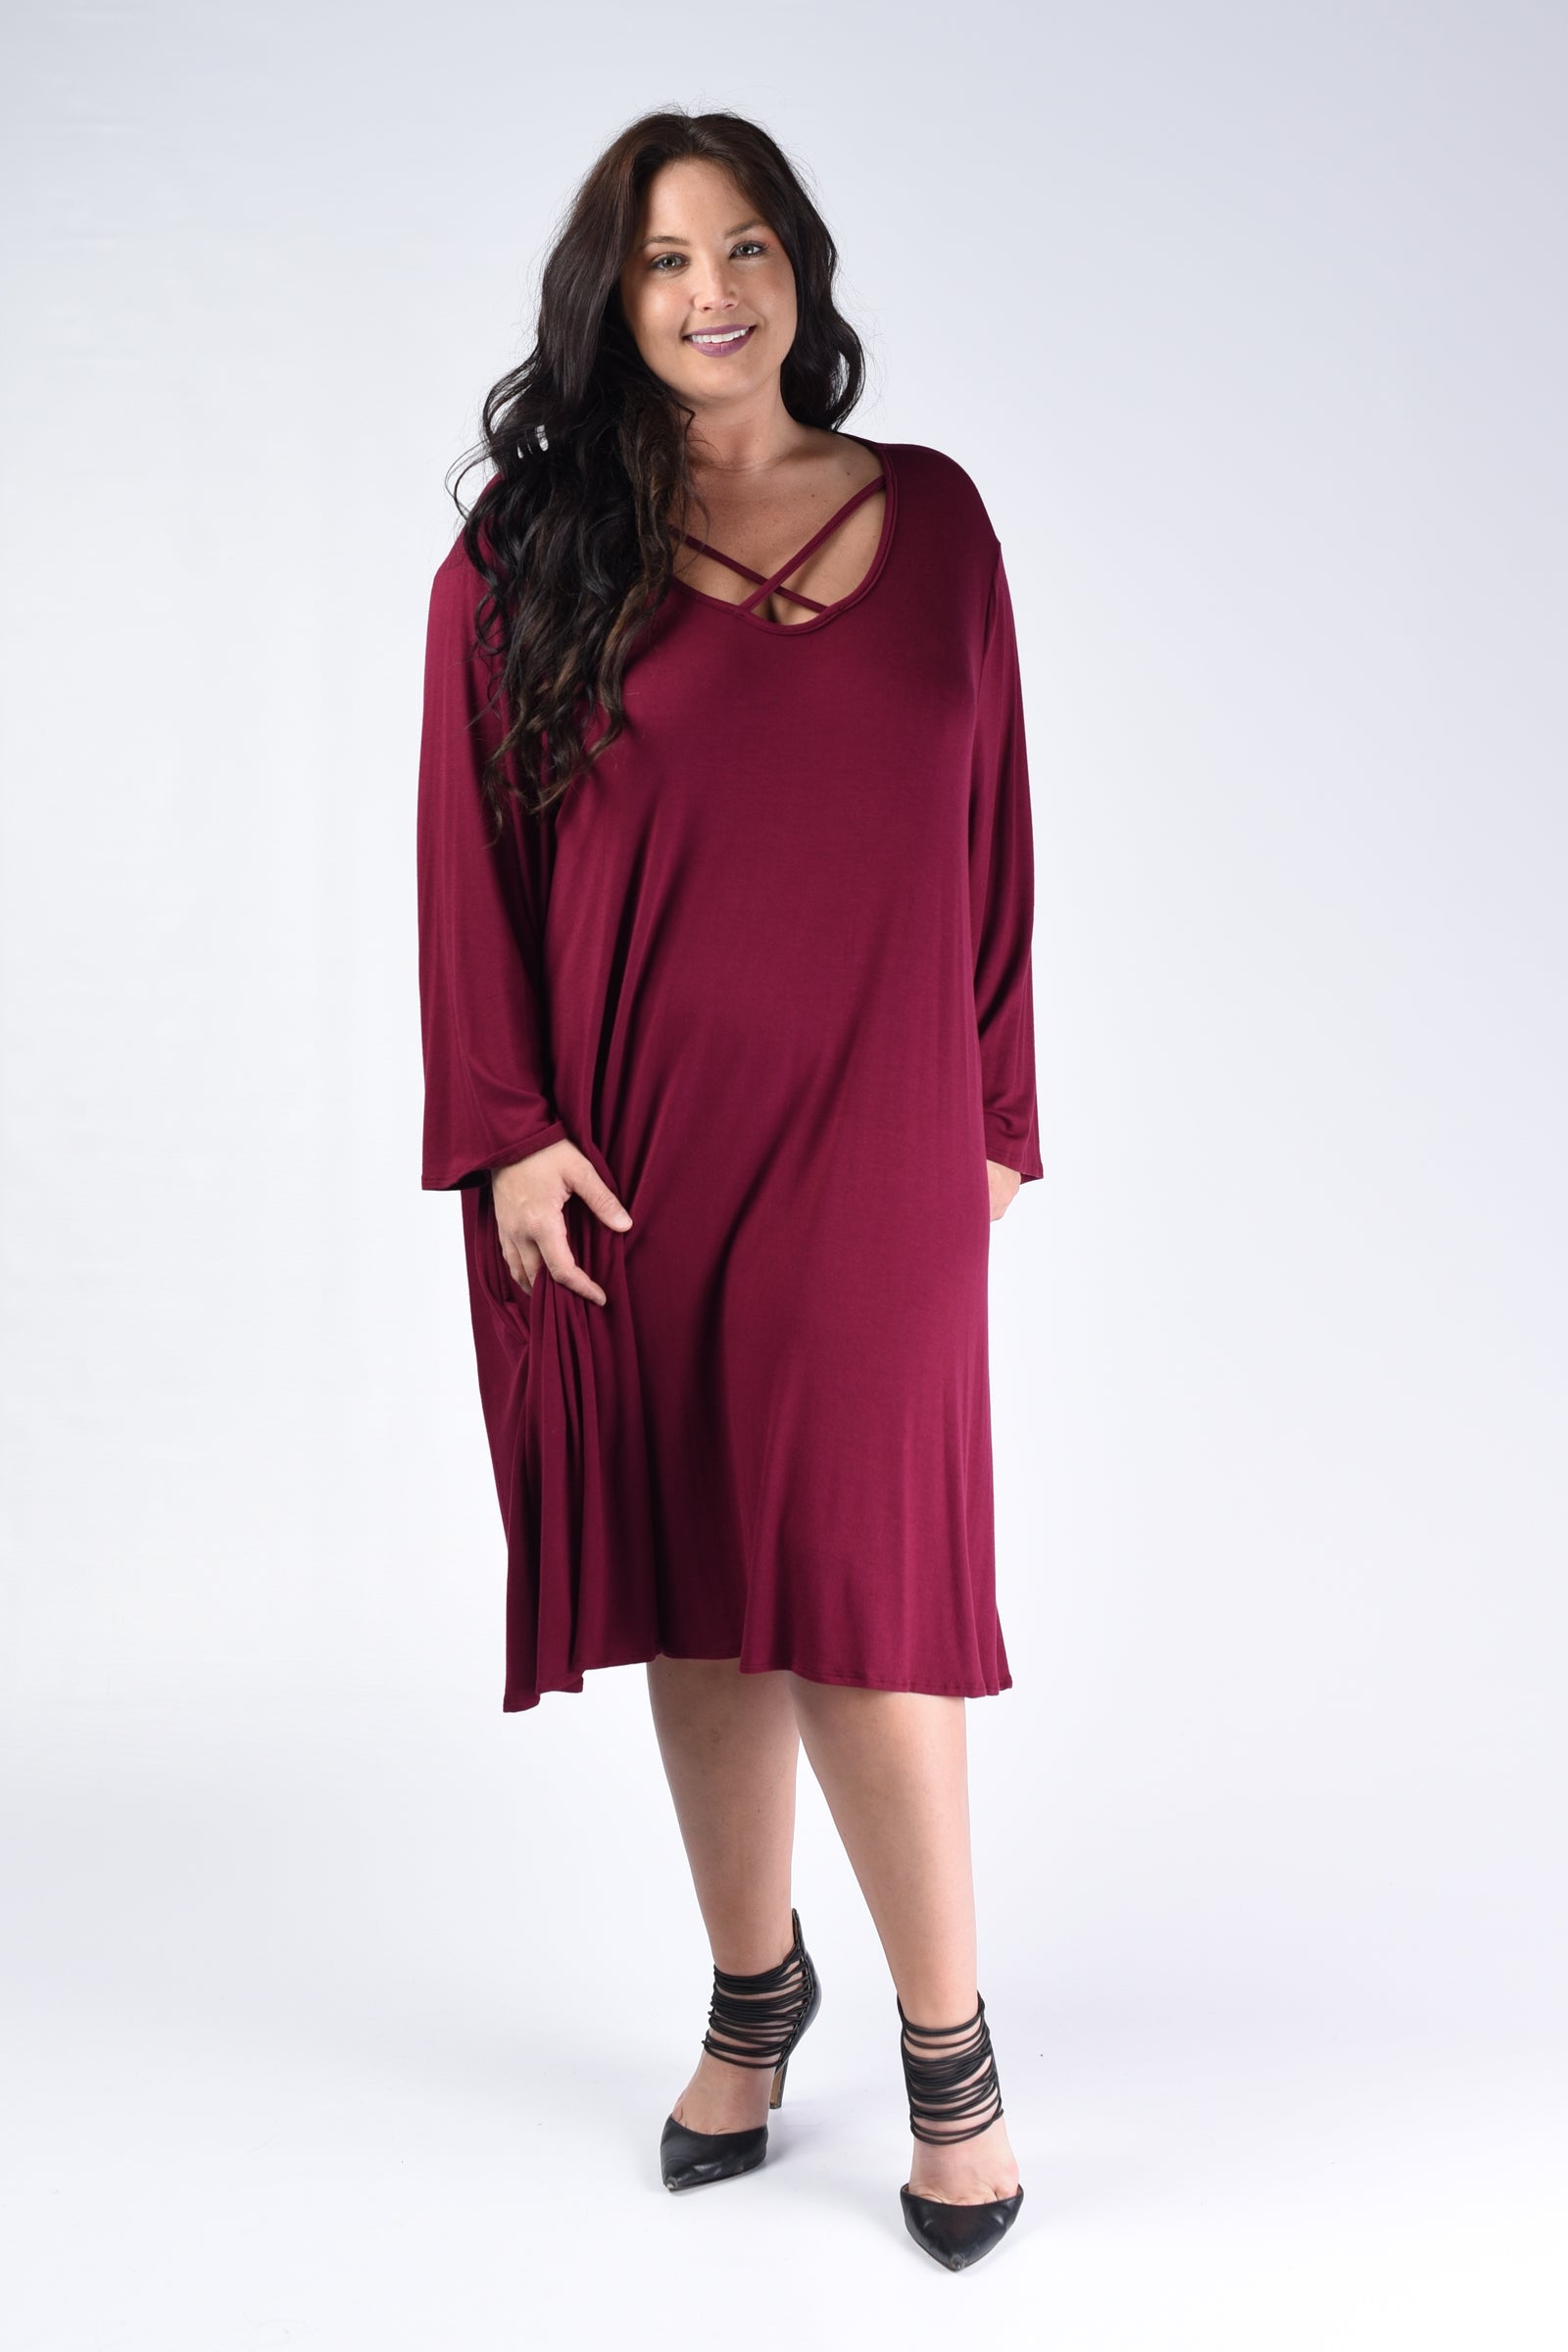 Wine Corset Bust Pocket Dress - www.mycurvystore.com - Curvy Boutique - Plus Size